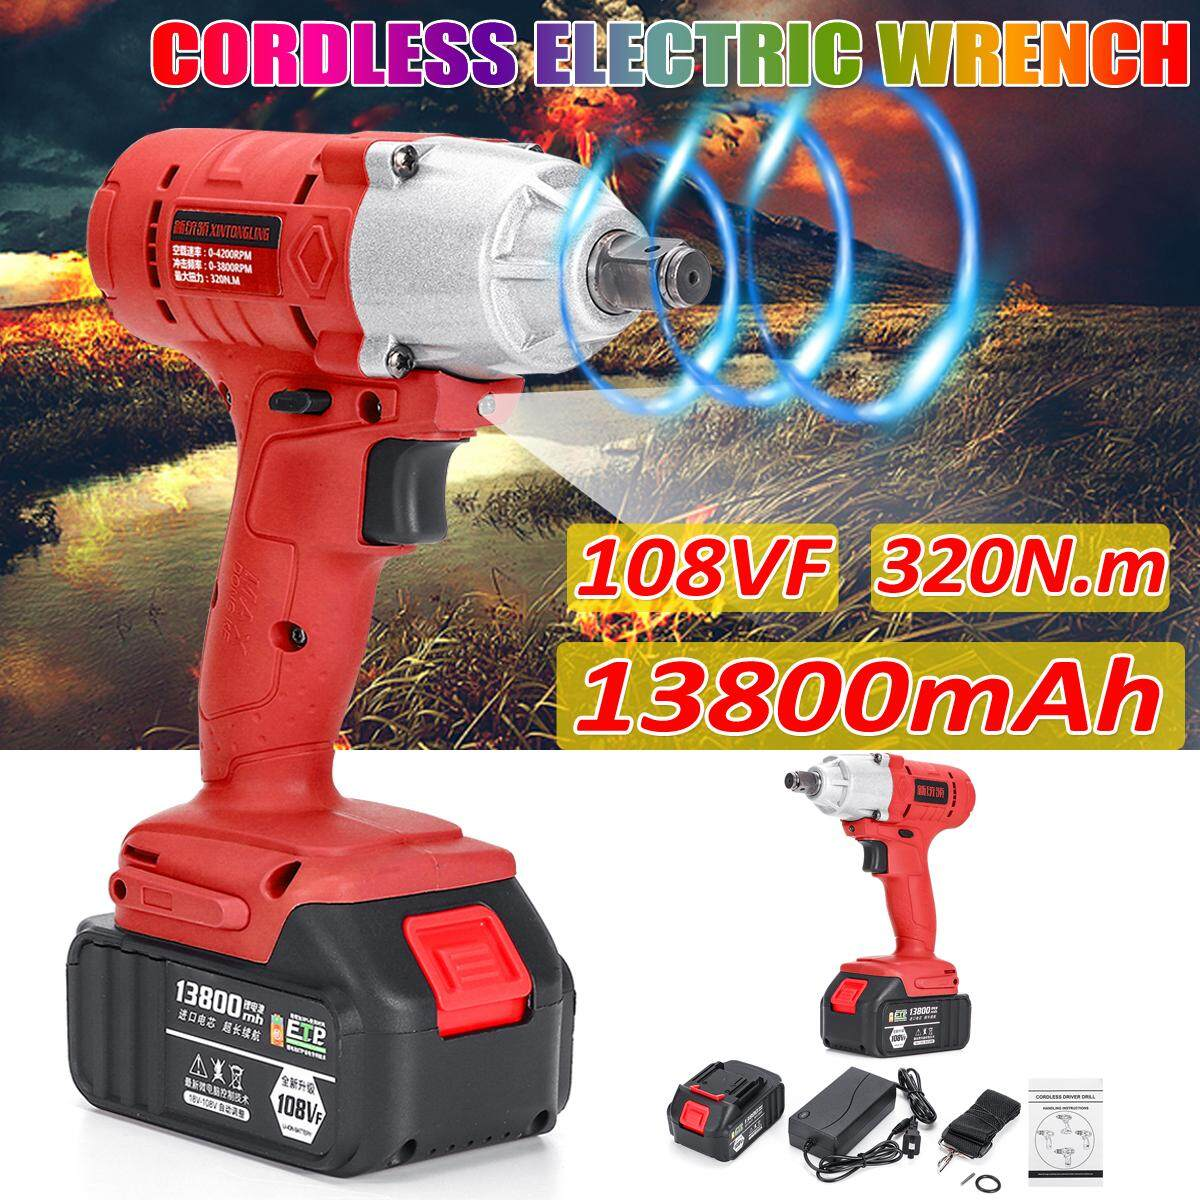 108VF 13800mAh 4200RPM Electric Cordless Impact Wrench Torque Drill Tool